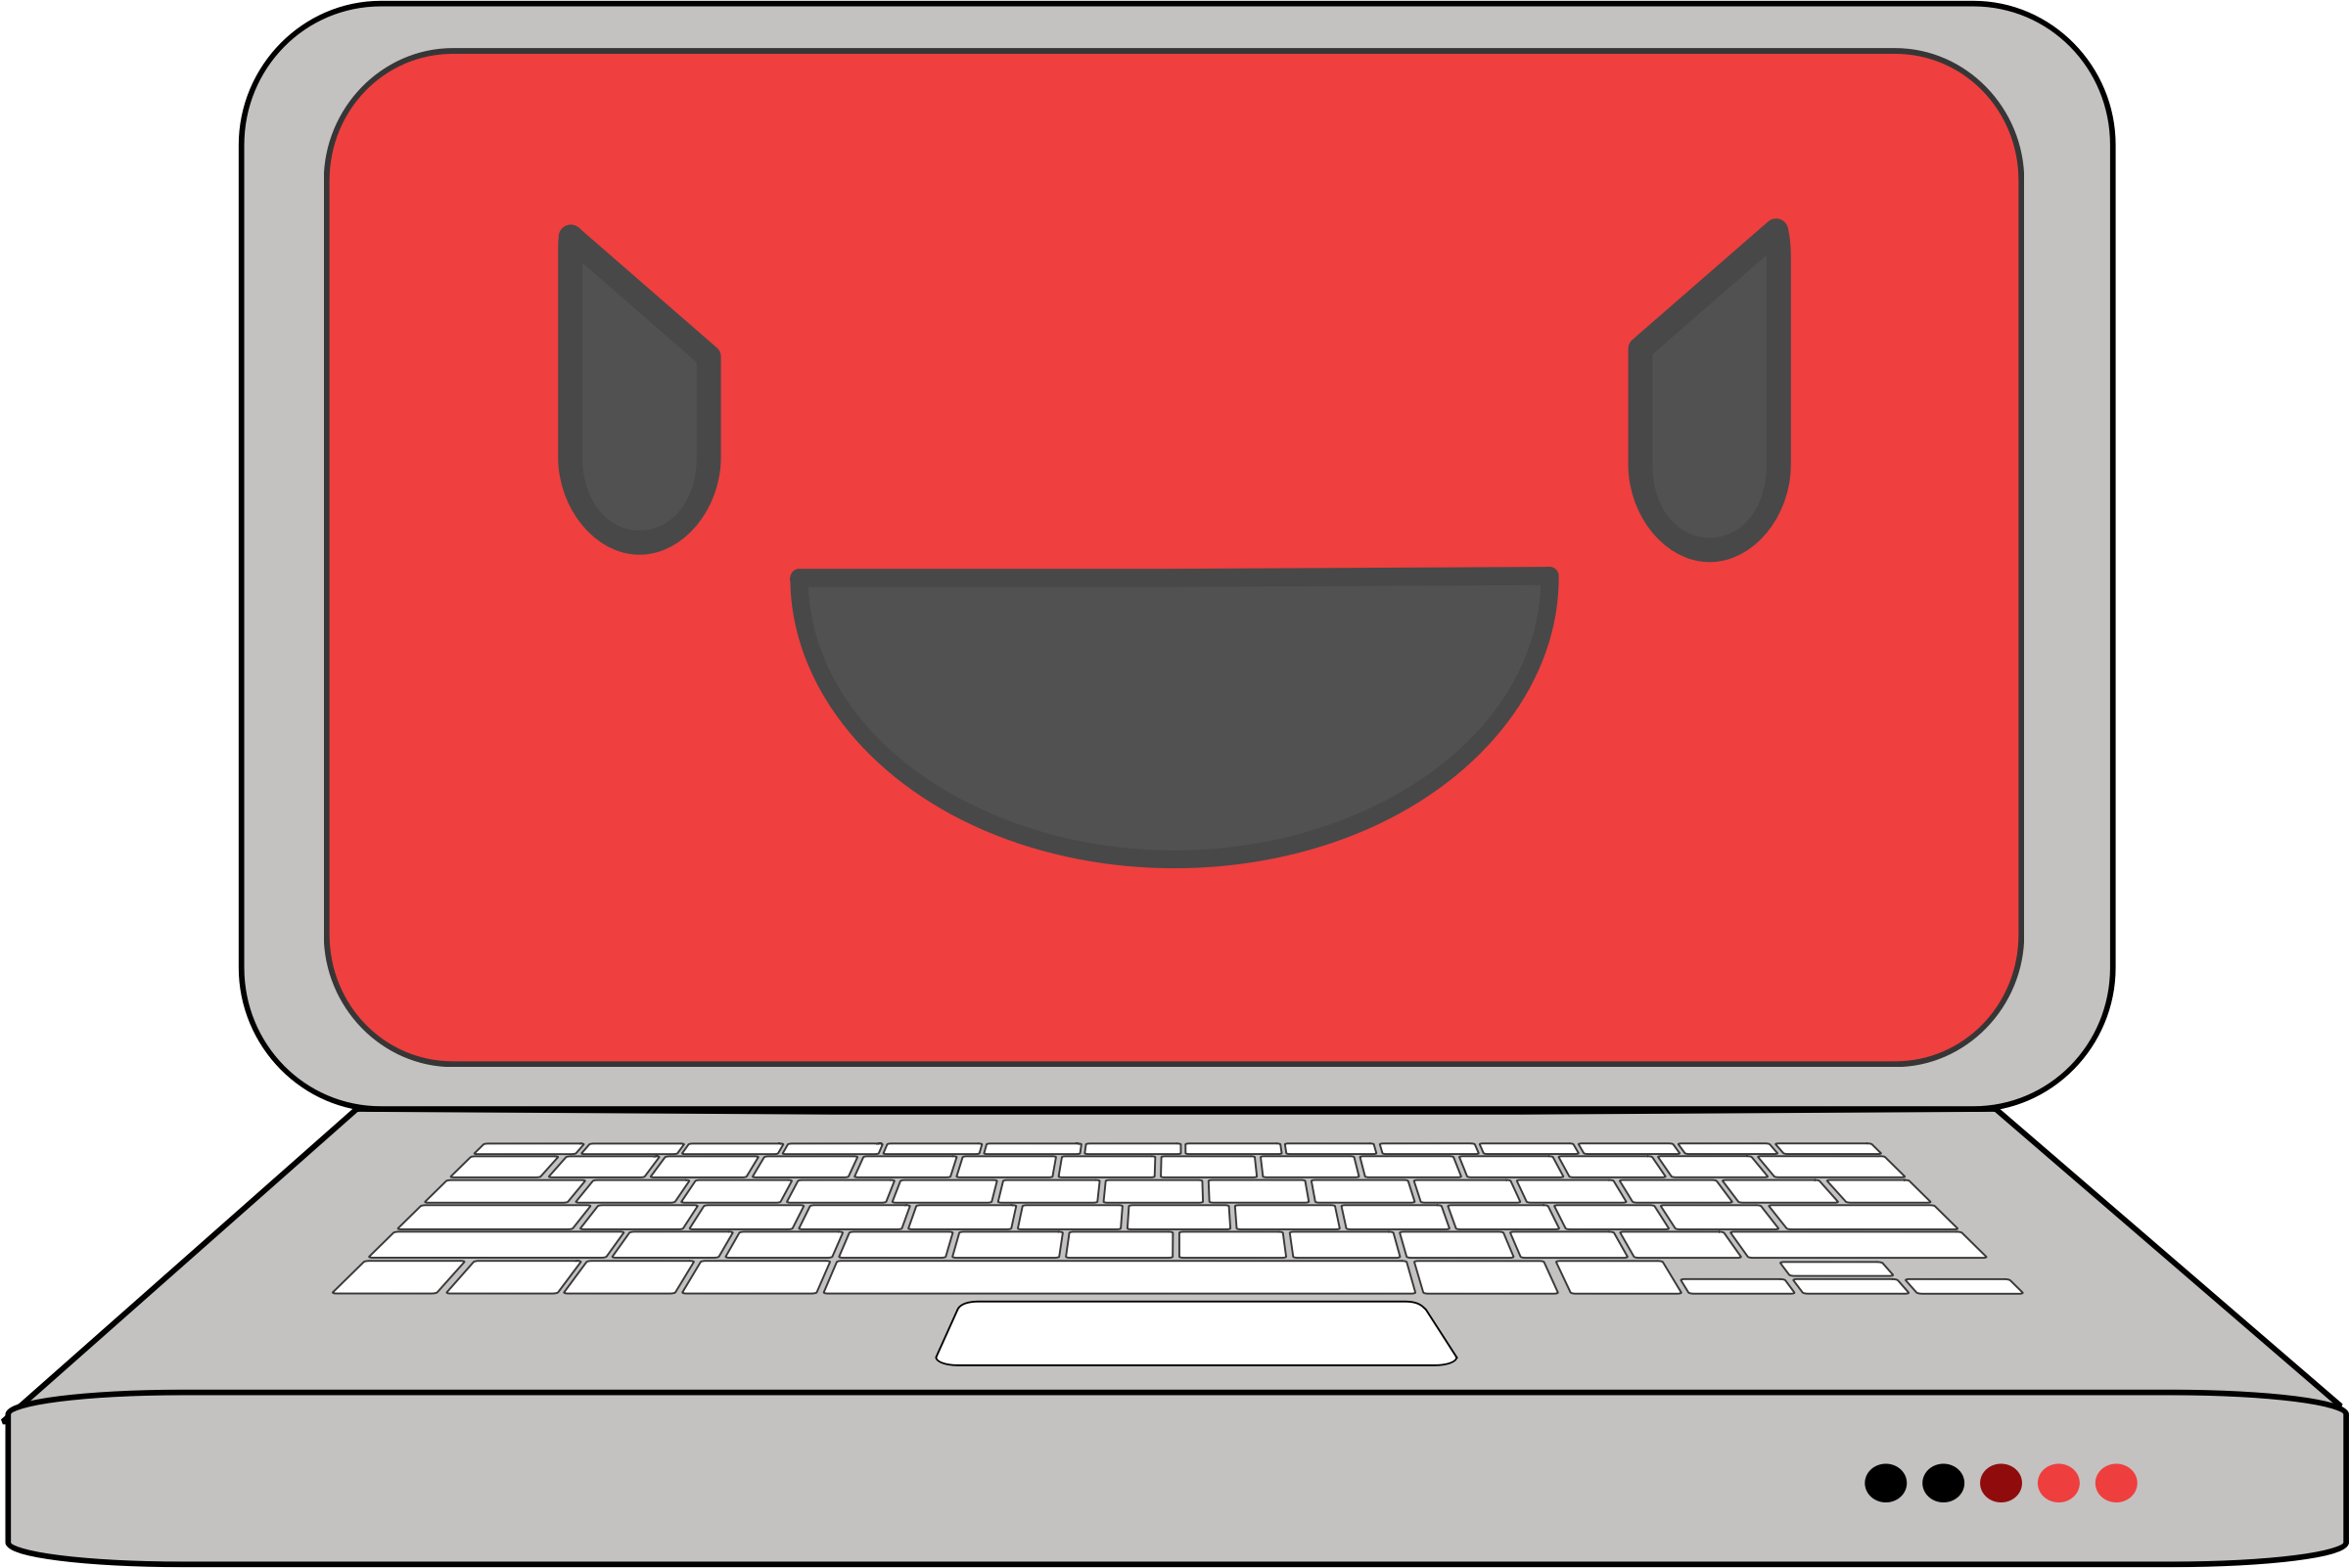 Virus removal and malware. Computer clipart red